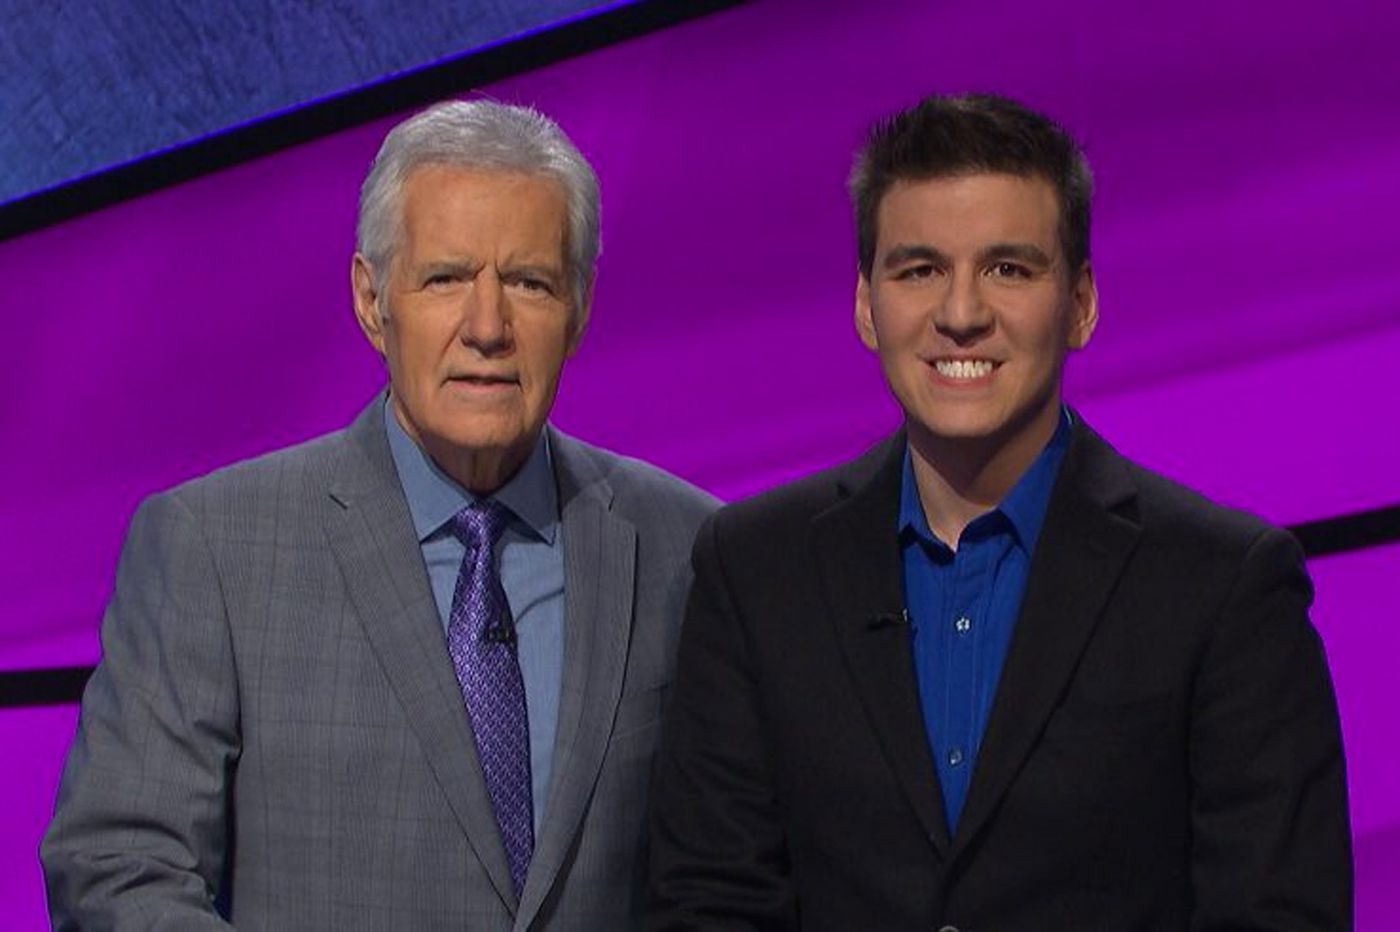 'Jeopardy!' and 'Wheel of Fortune' won't air on 6ABC Friday due to the NFL Draft